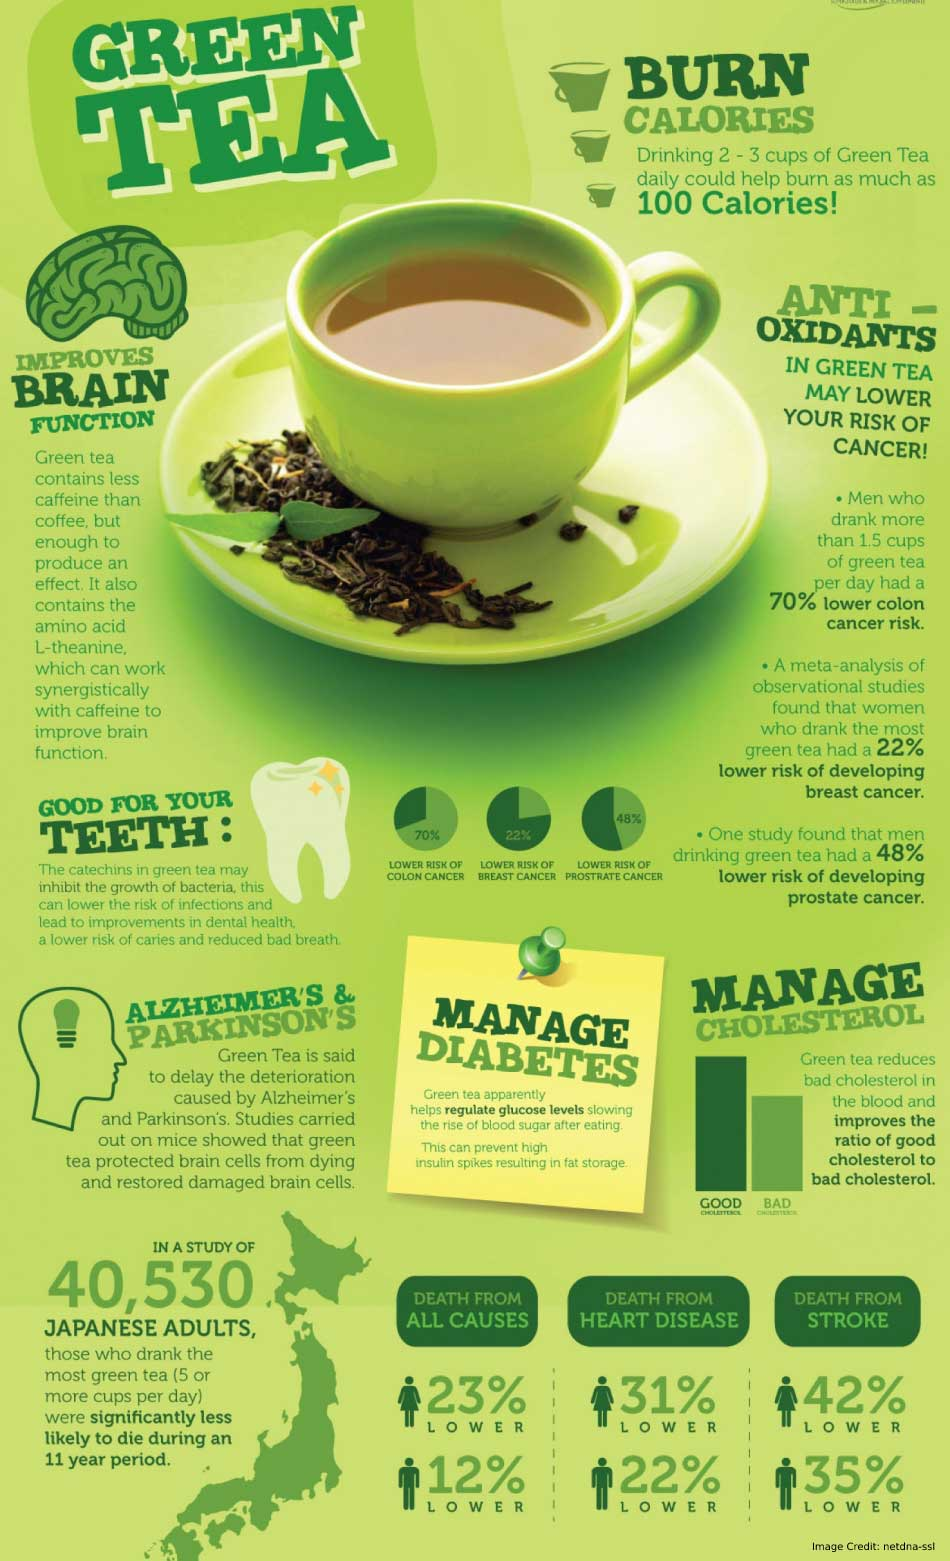 Green Tea Burn Calories